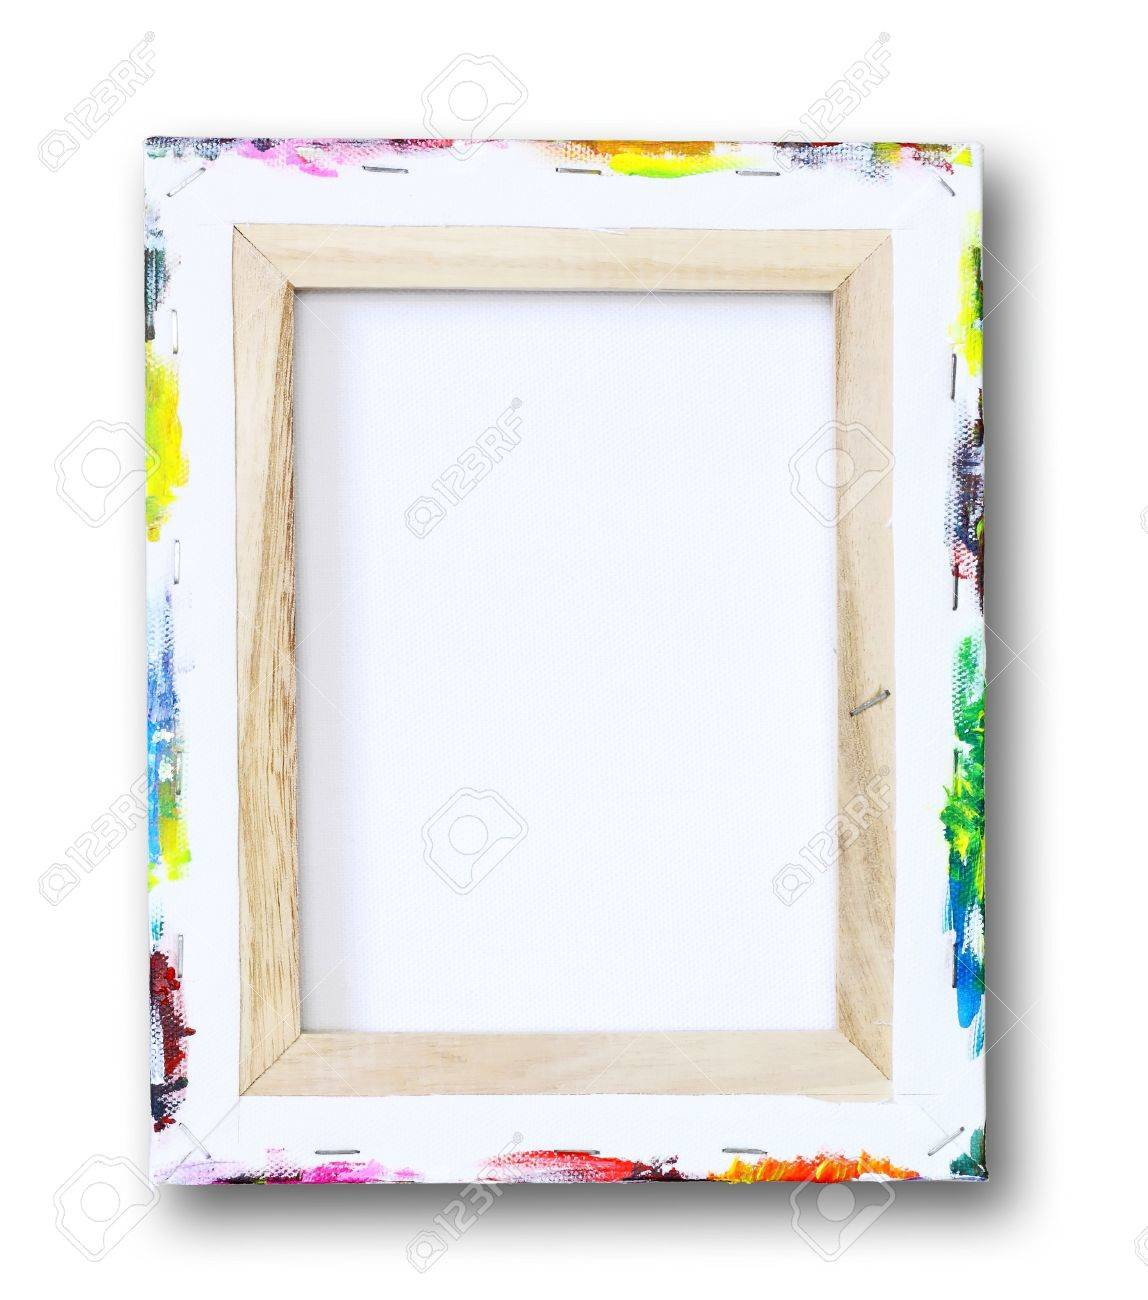 canvas on a stretcher, acrylic paint on edge isolated on white Stock Photo - 10352445